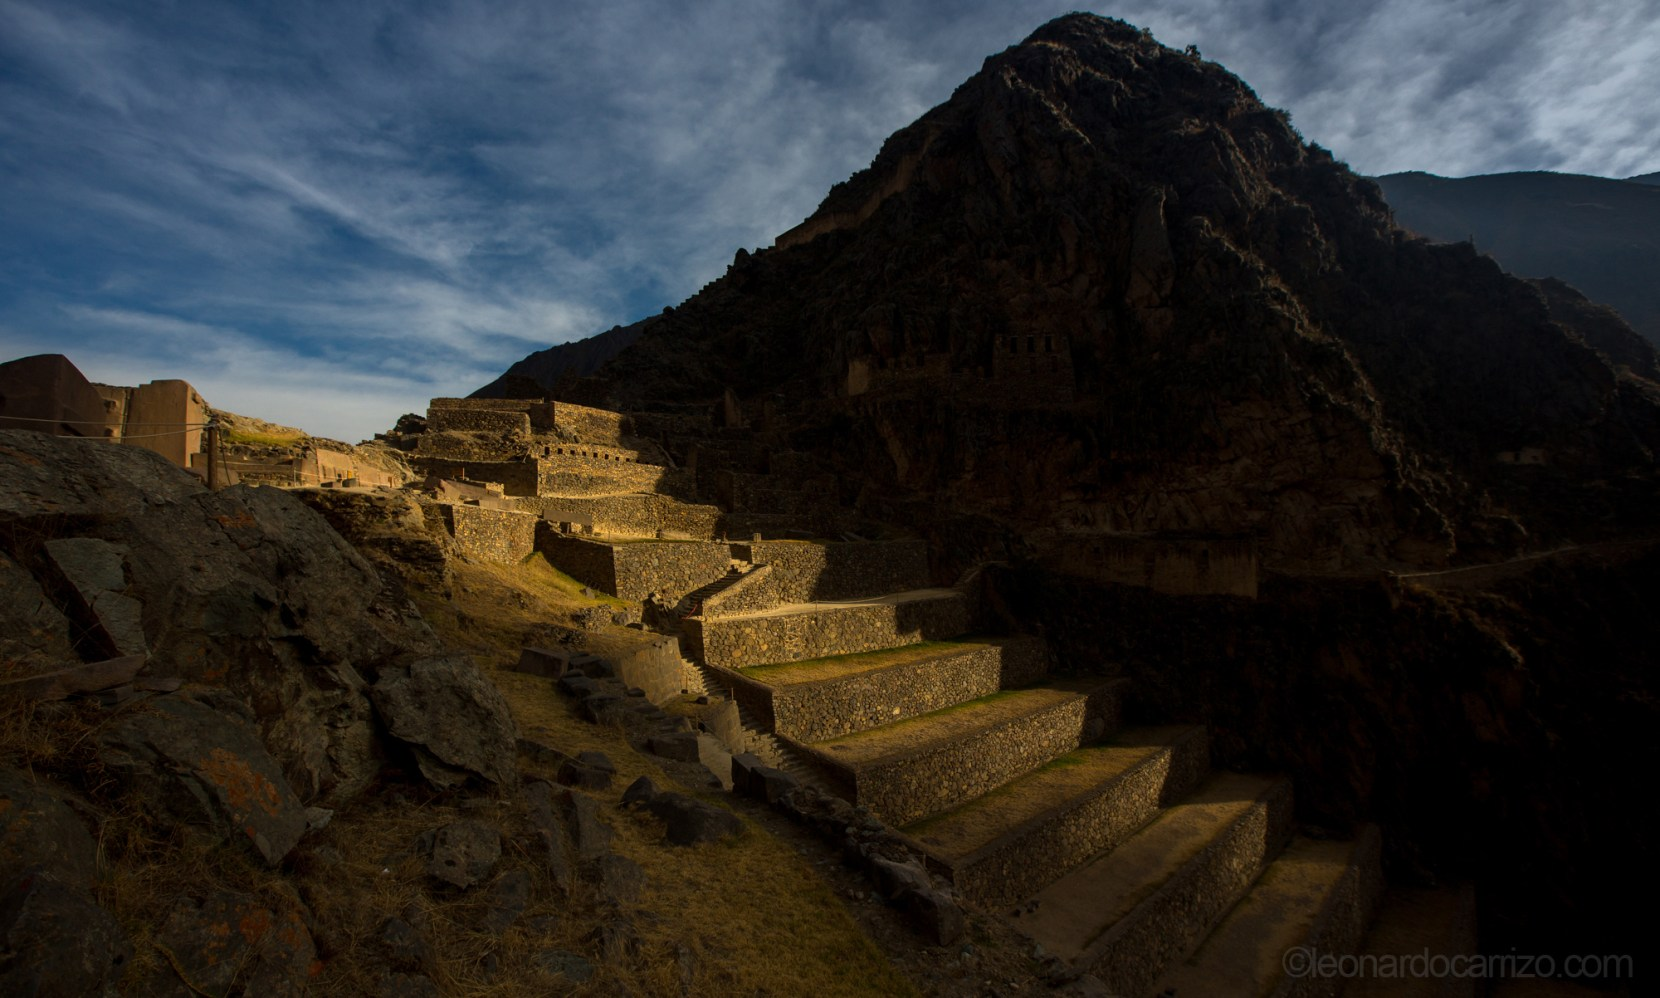 Ollantaytambo archeological site, Sacred Valley, Cusco, Peru. photo by Leonardo Carrizo